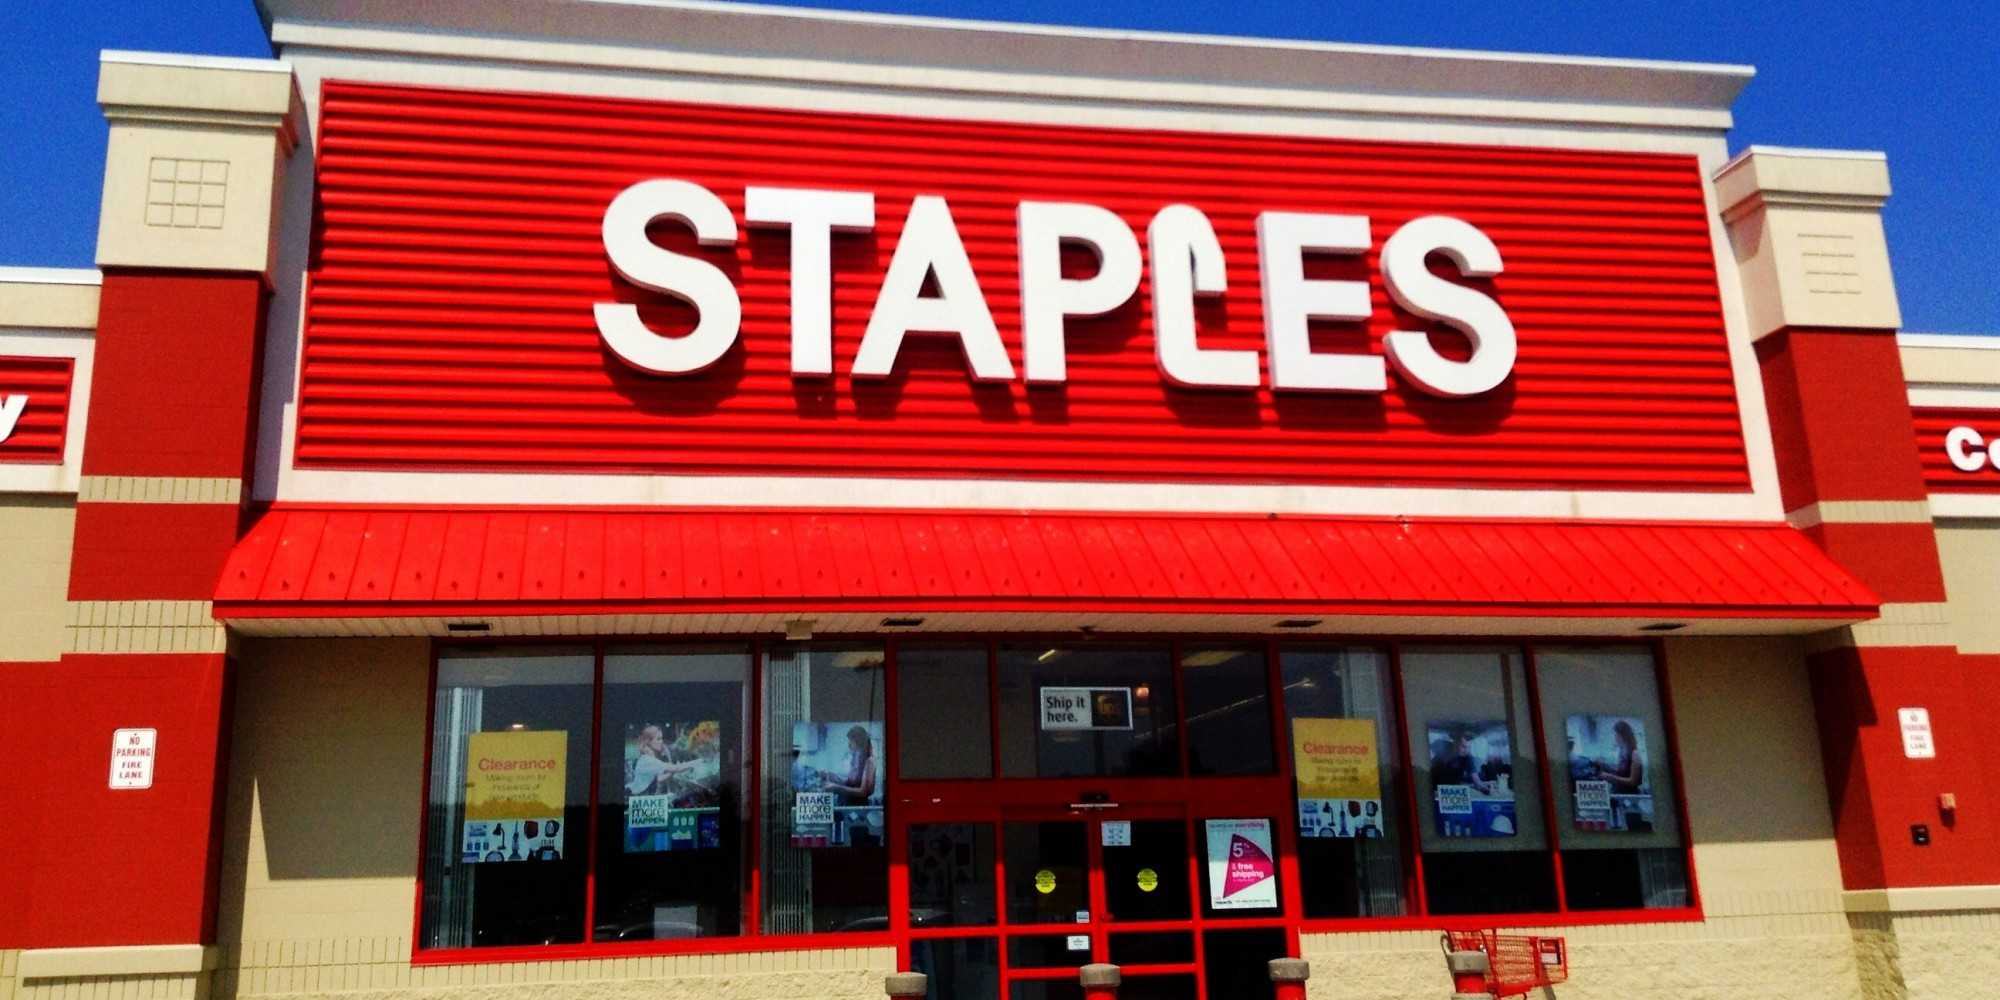 staples hours today, staples hours of operation